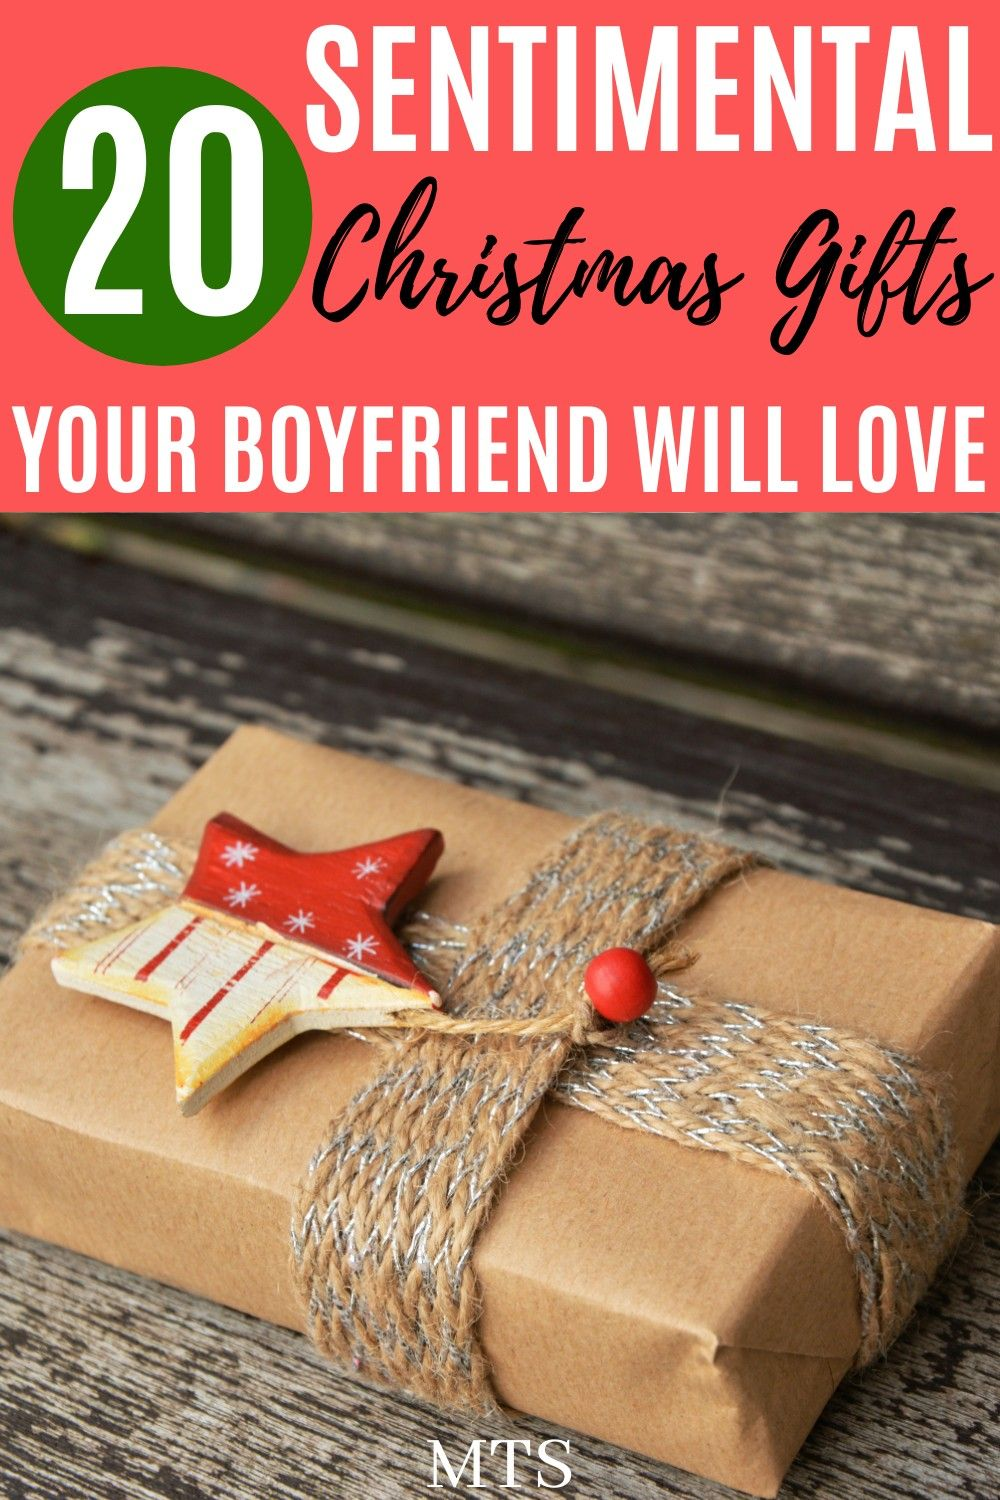 20 Meaningful Christmas Gifts For Boyfriend In 2020 Meaningful Christmas Gifts Christmas Gifts For Boyfriend Christmas Presents For Boyfriend